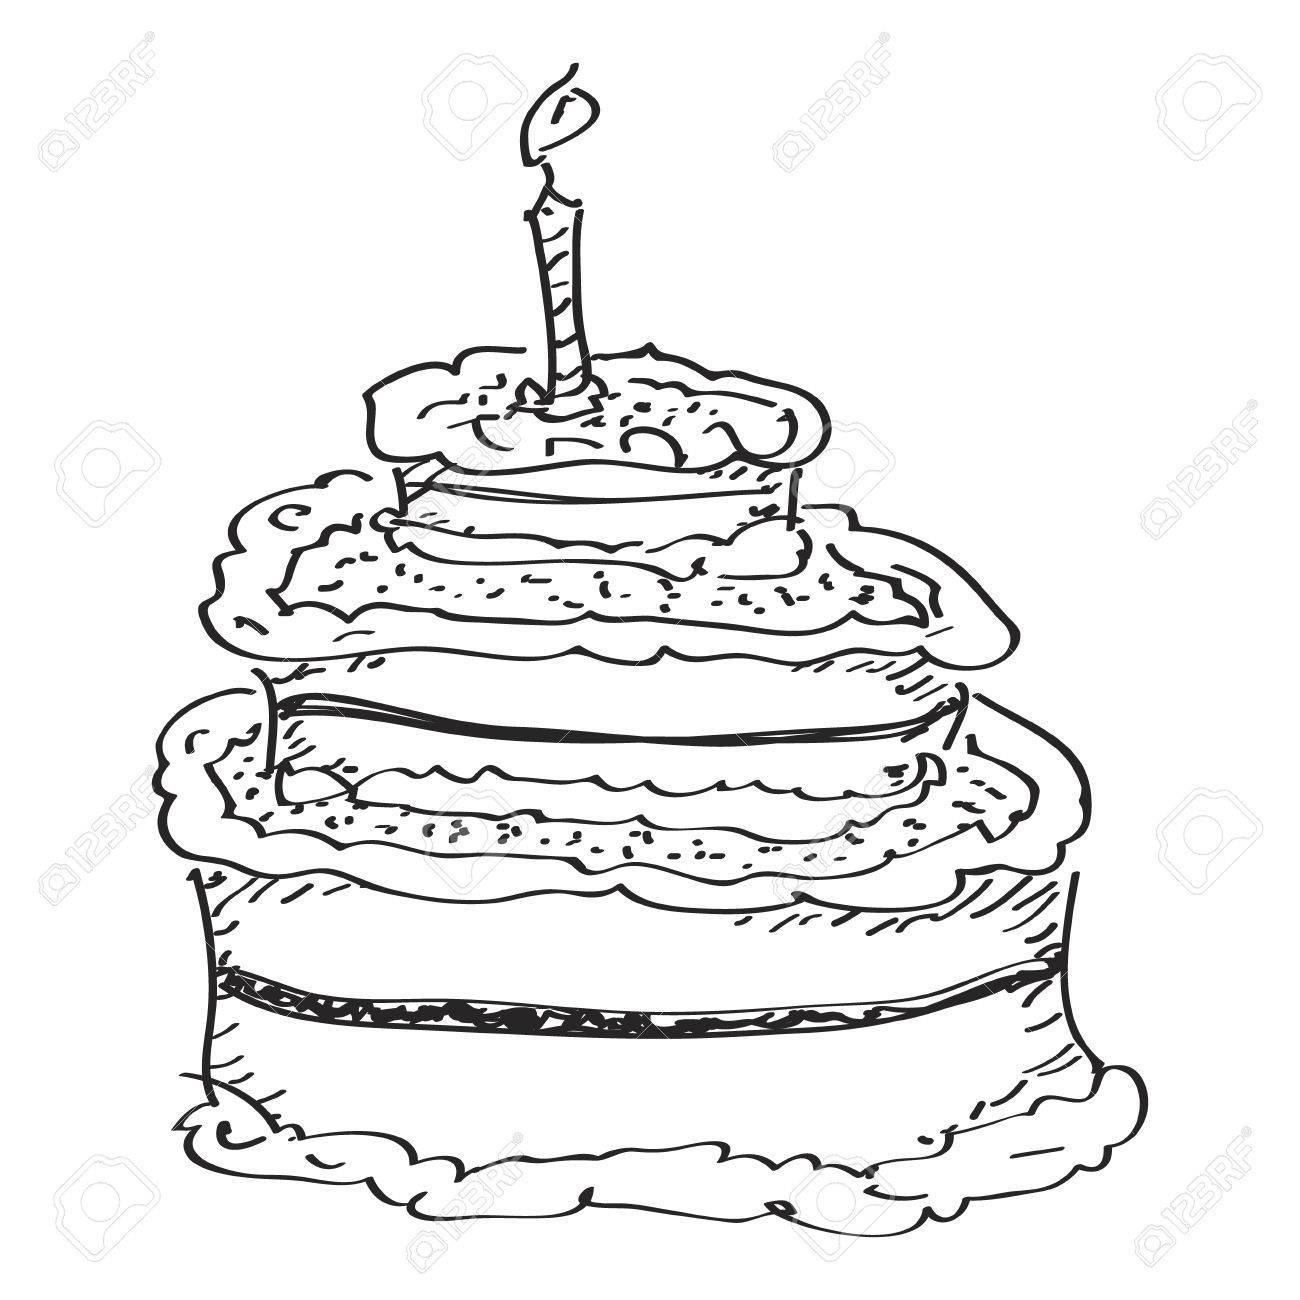 Simple Hand Drawn Doodle Of A Birthday Cake Royalty Free Cliparts Vectors And Stock Illustration Image 42649664